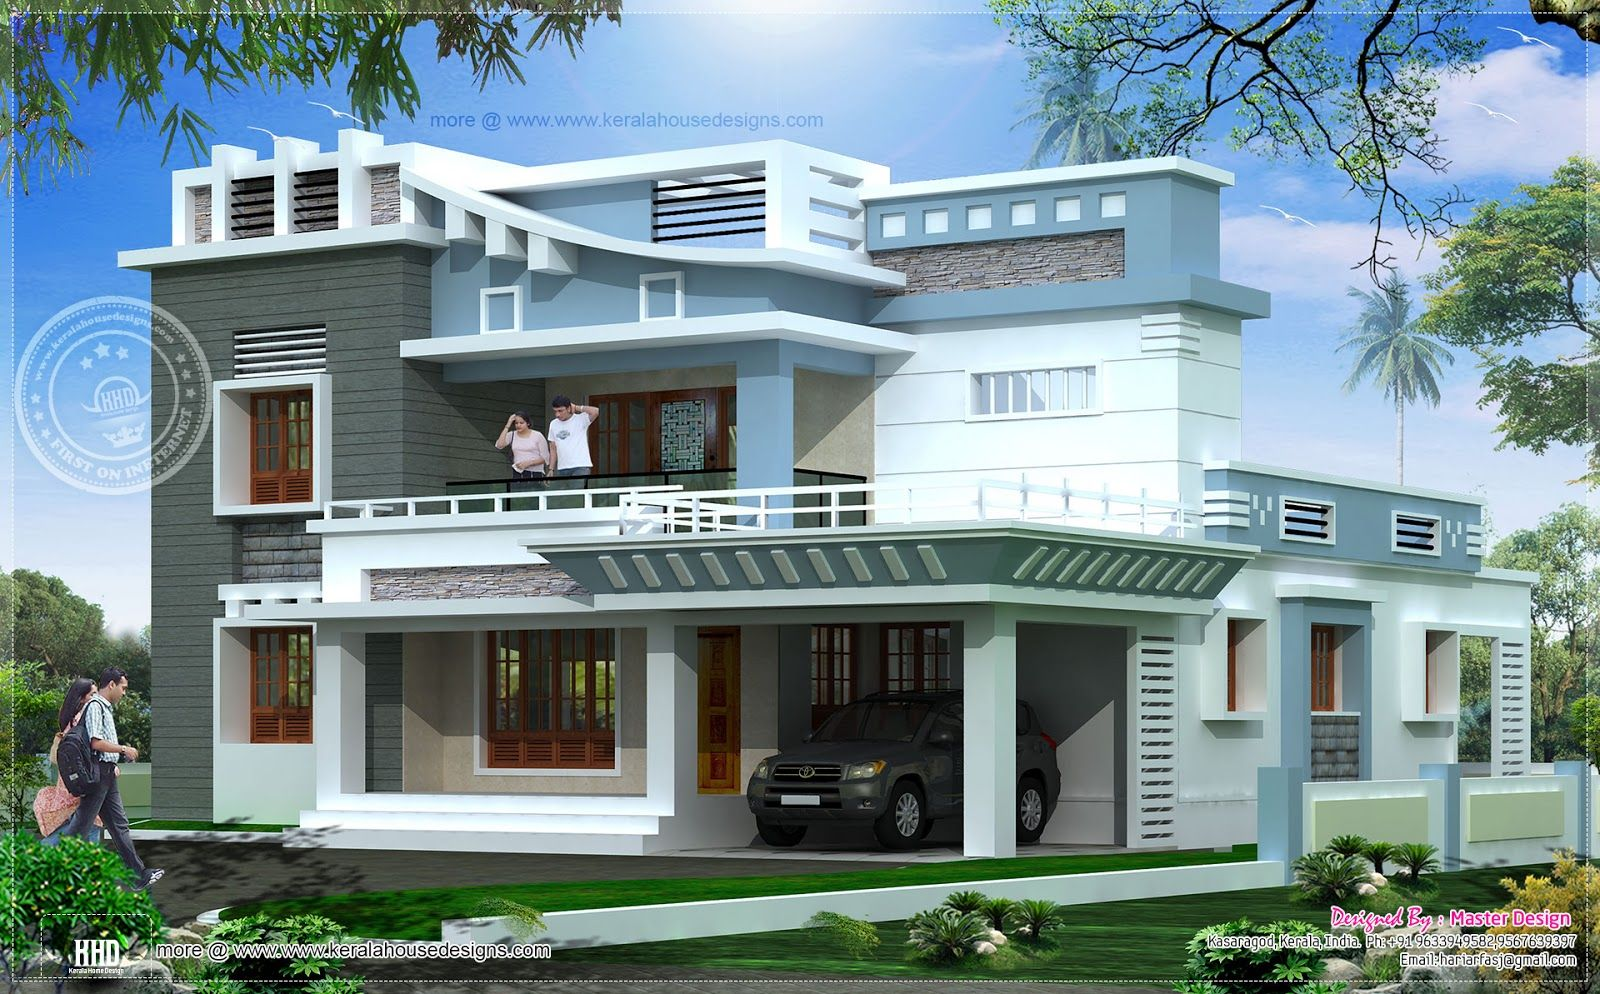 Exterior Building Design cool feet exterior home elevation - stylendesigns! | exterior